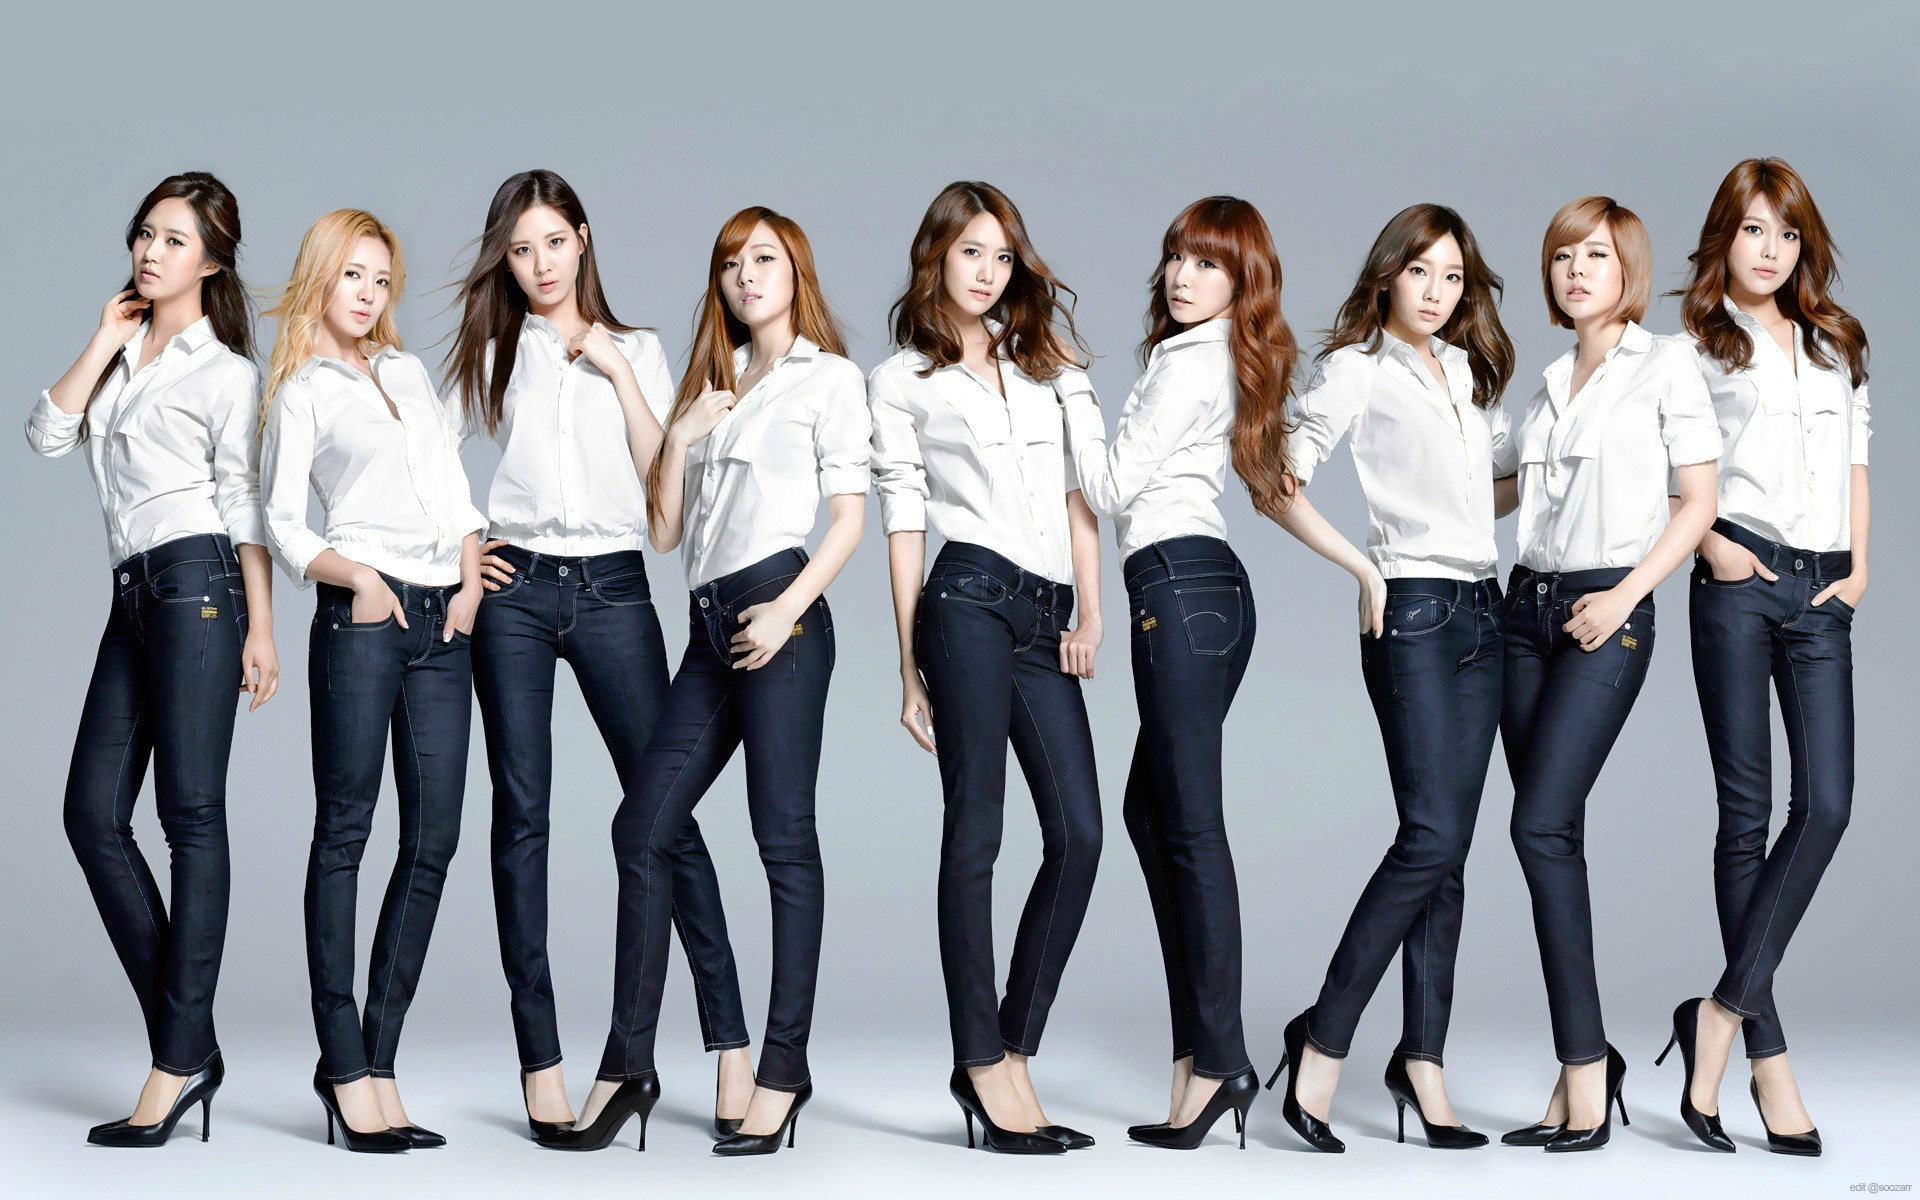 SNSD wallpaper - kpop 4ever Wallpaper (32581436) - Fanpop